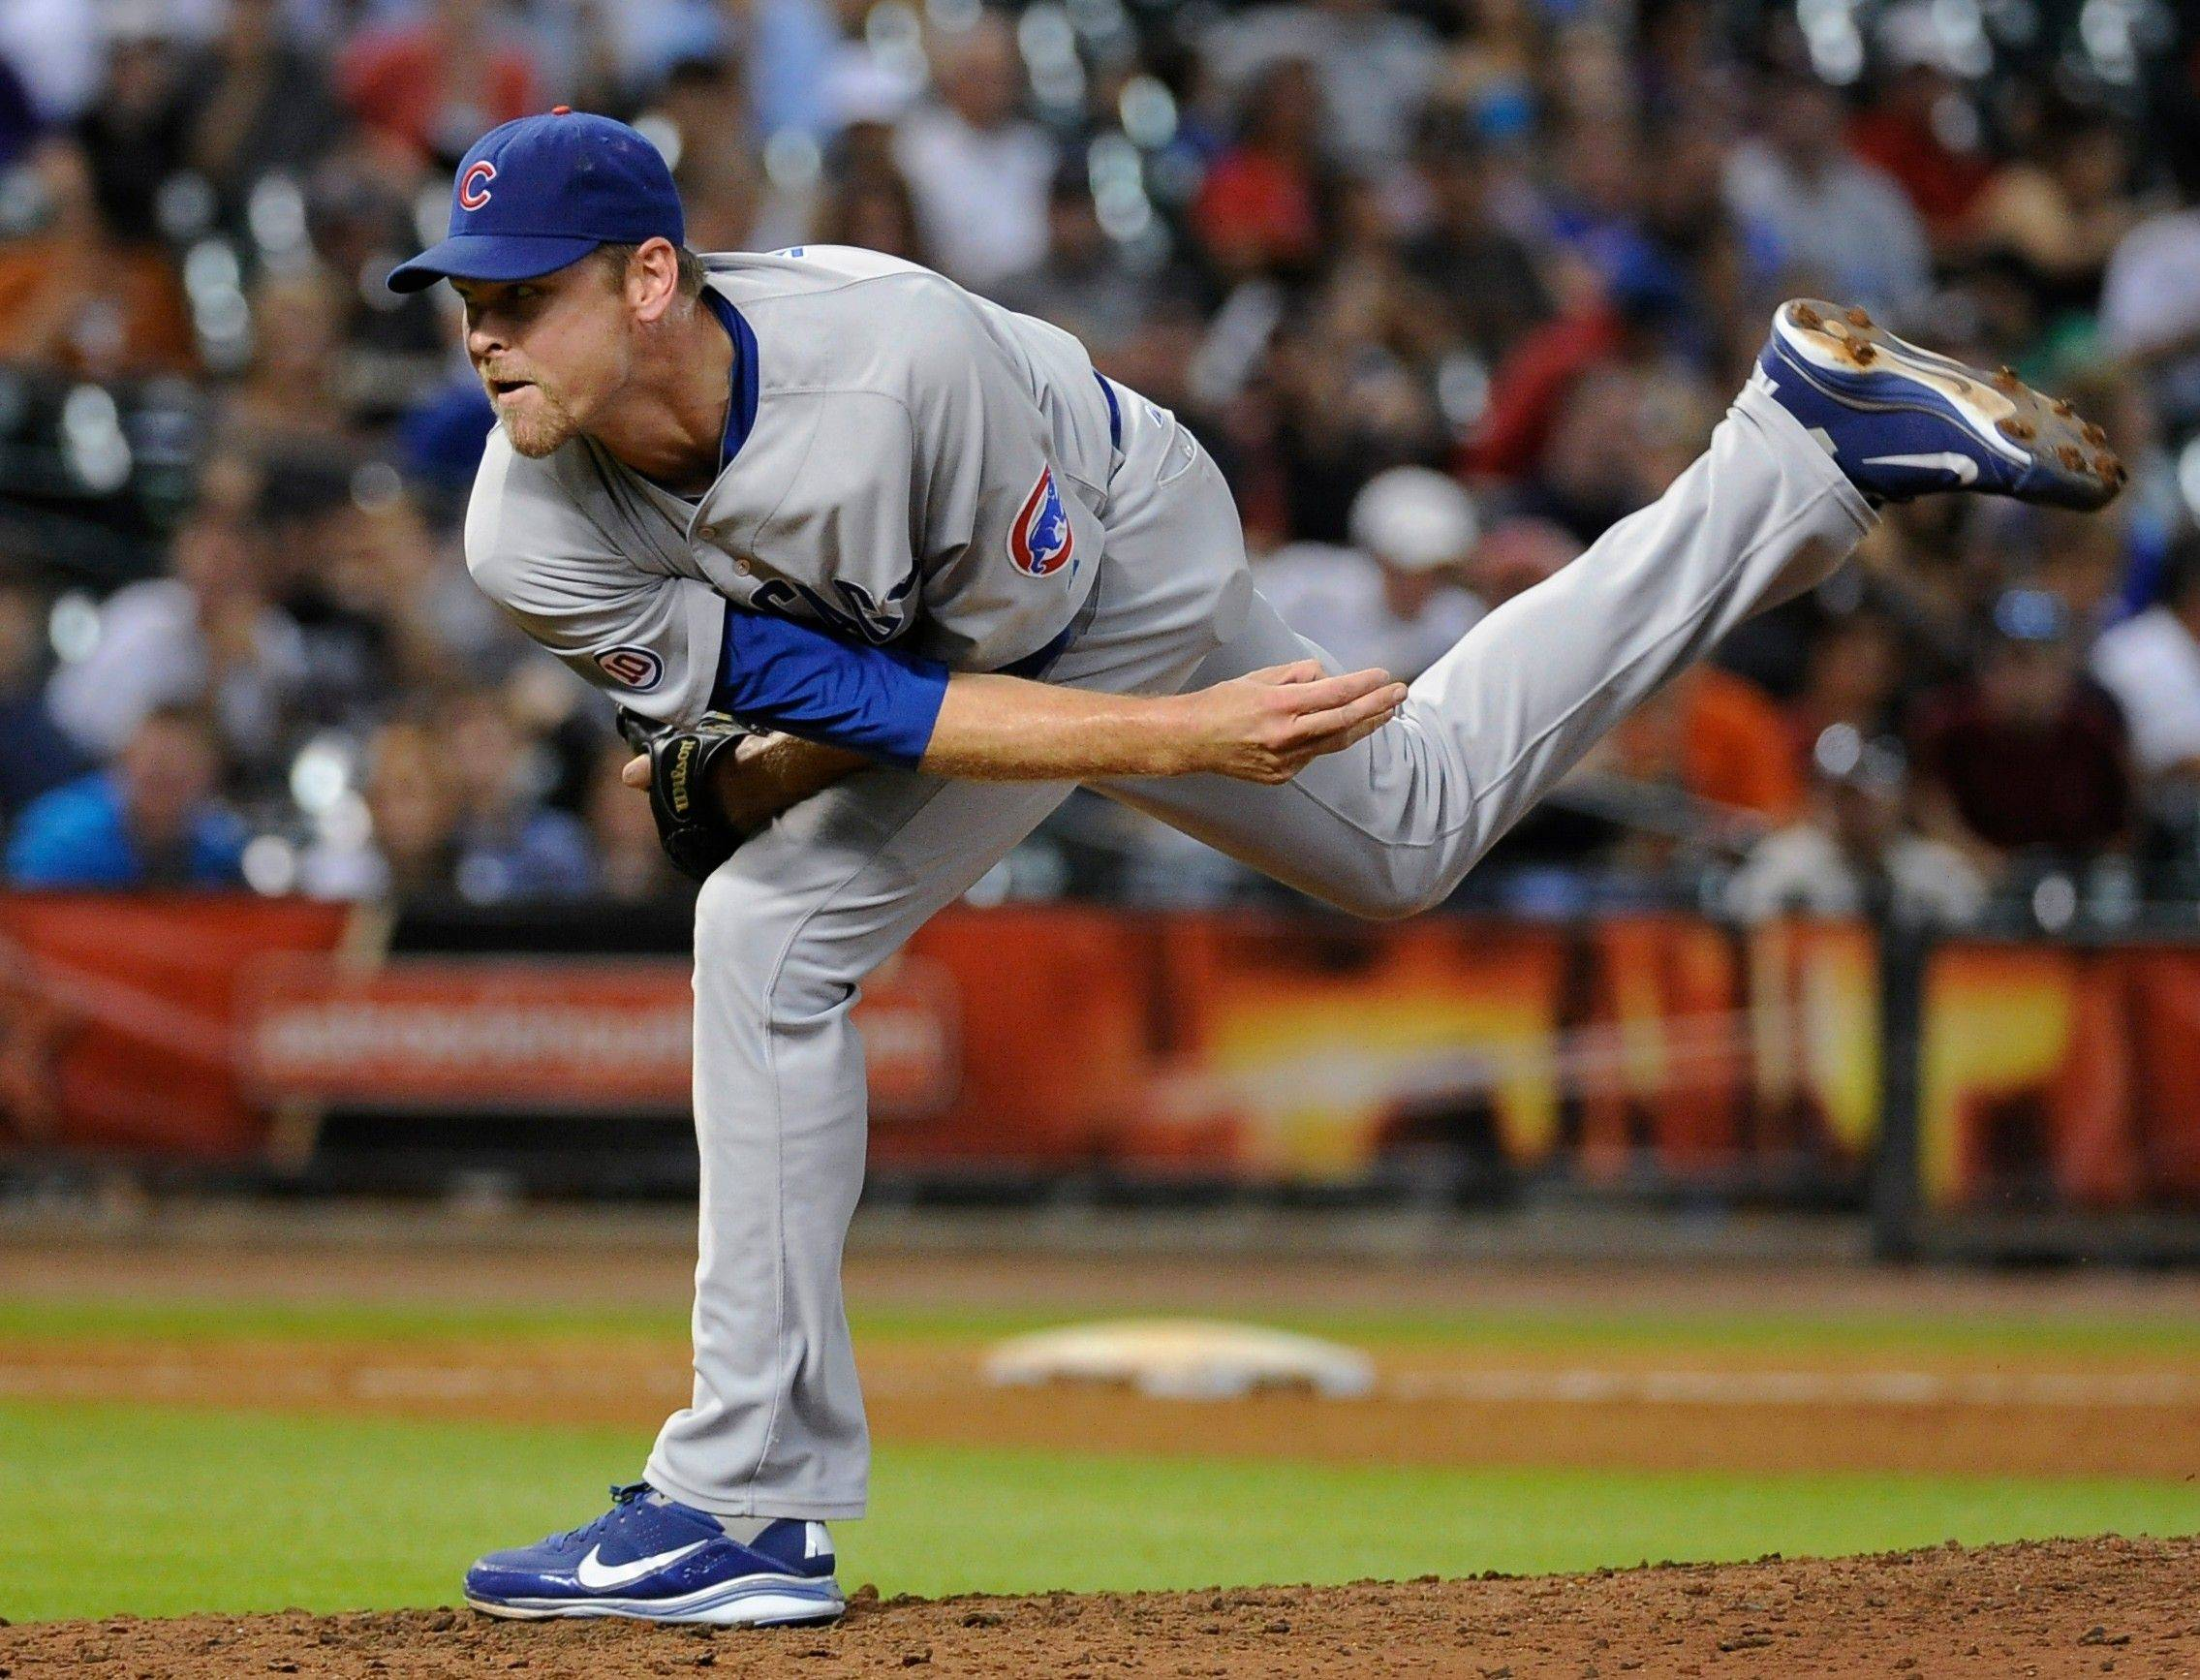 Cubs relief pitcher Kerry Wood ended the 2011 season early due to a tear in his left knee. The 34-year-old right-hander had surgery and is now talking with other clubs, as well as the Cubs, about pitching next season.